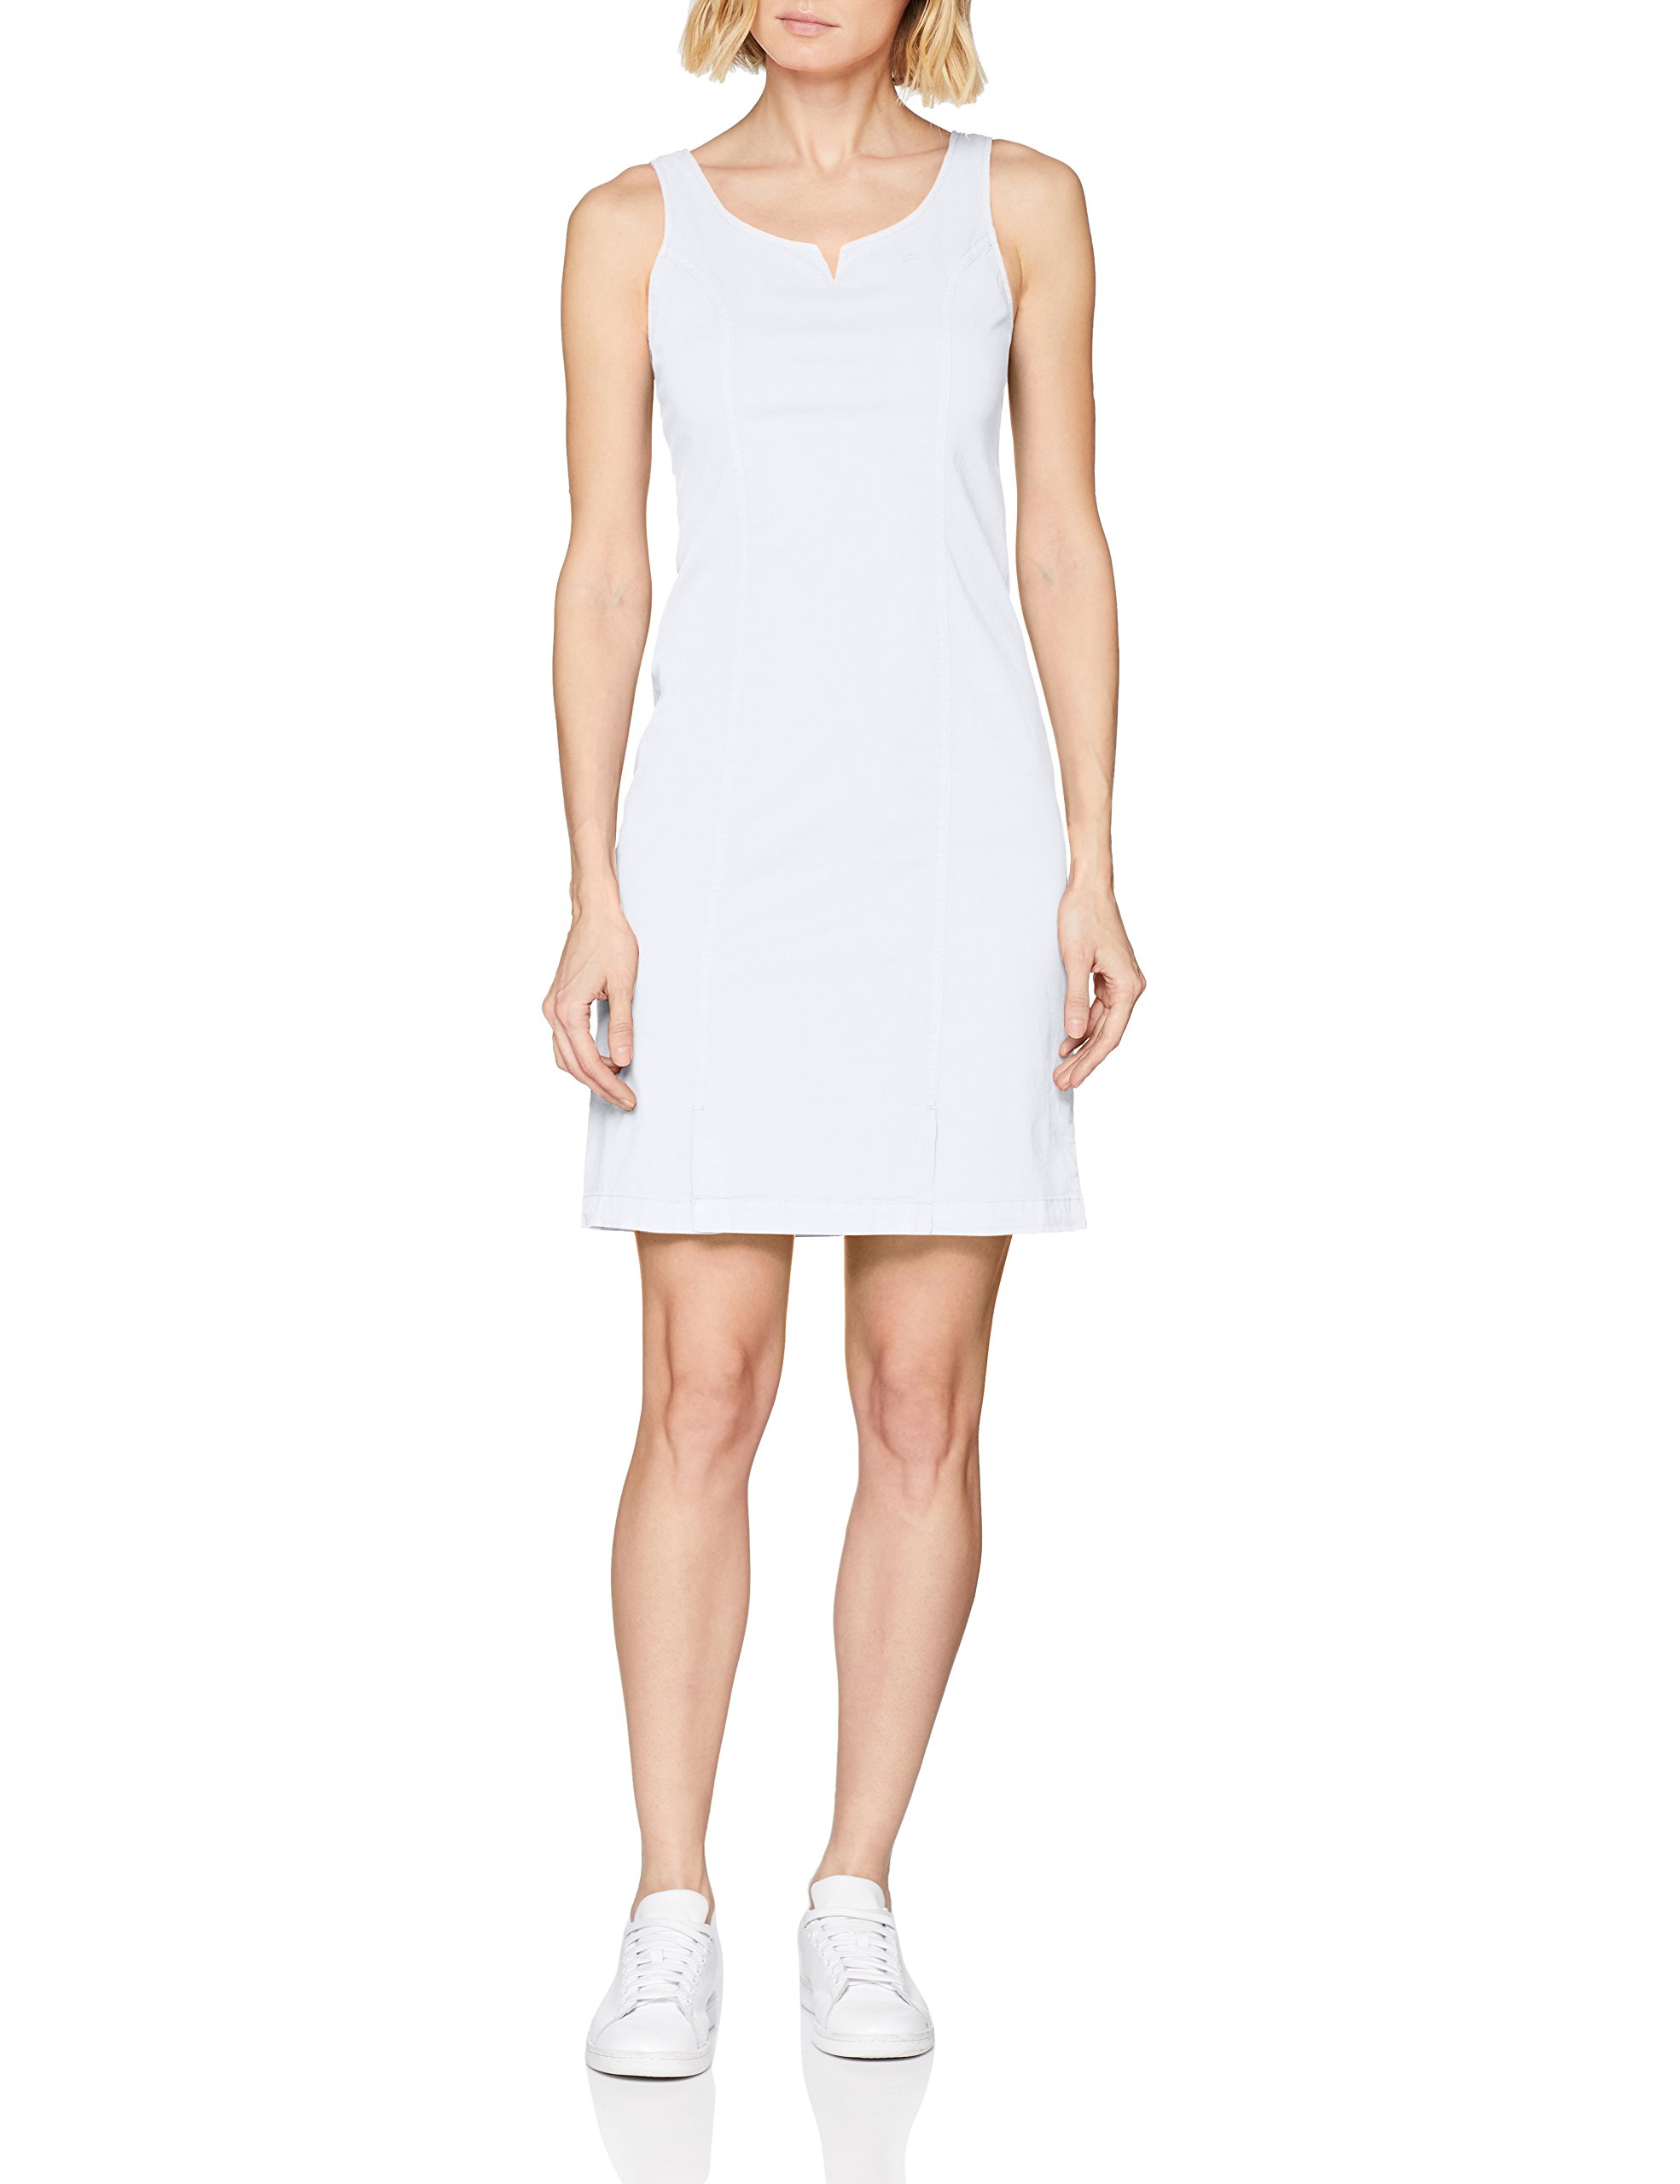 Fabricant40Femme Mejerob Tbs 027taille Robeblanc Robeblanc Fabricant40Femme Tbs Mejerob 027taille doxreCB